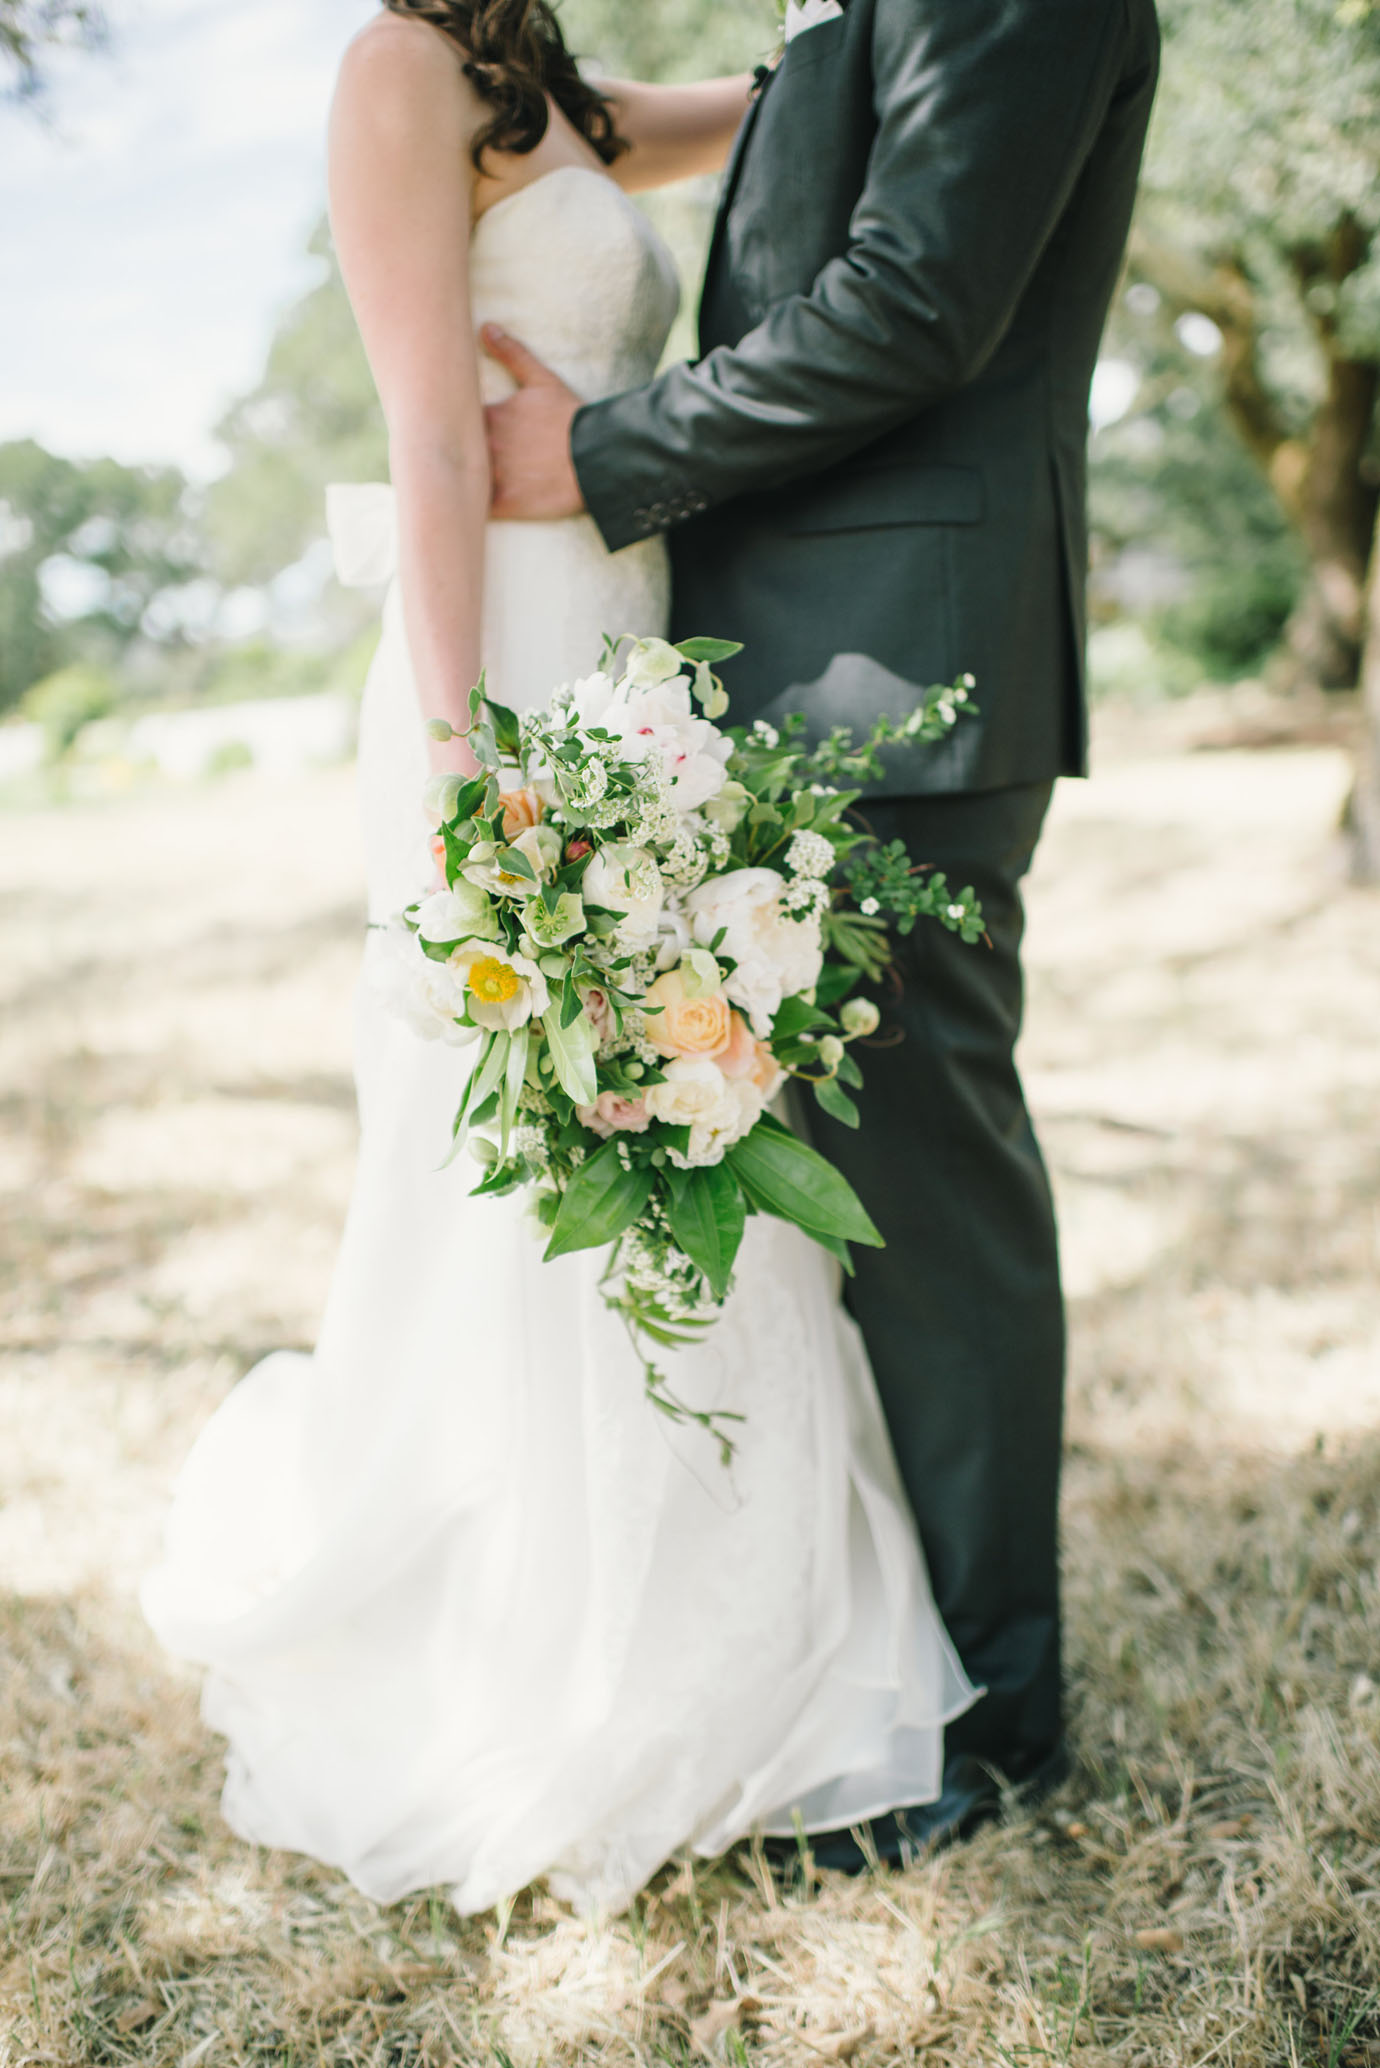 24-real-wedding-at-beltane-ranch066